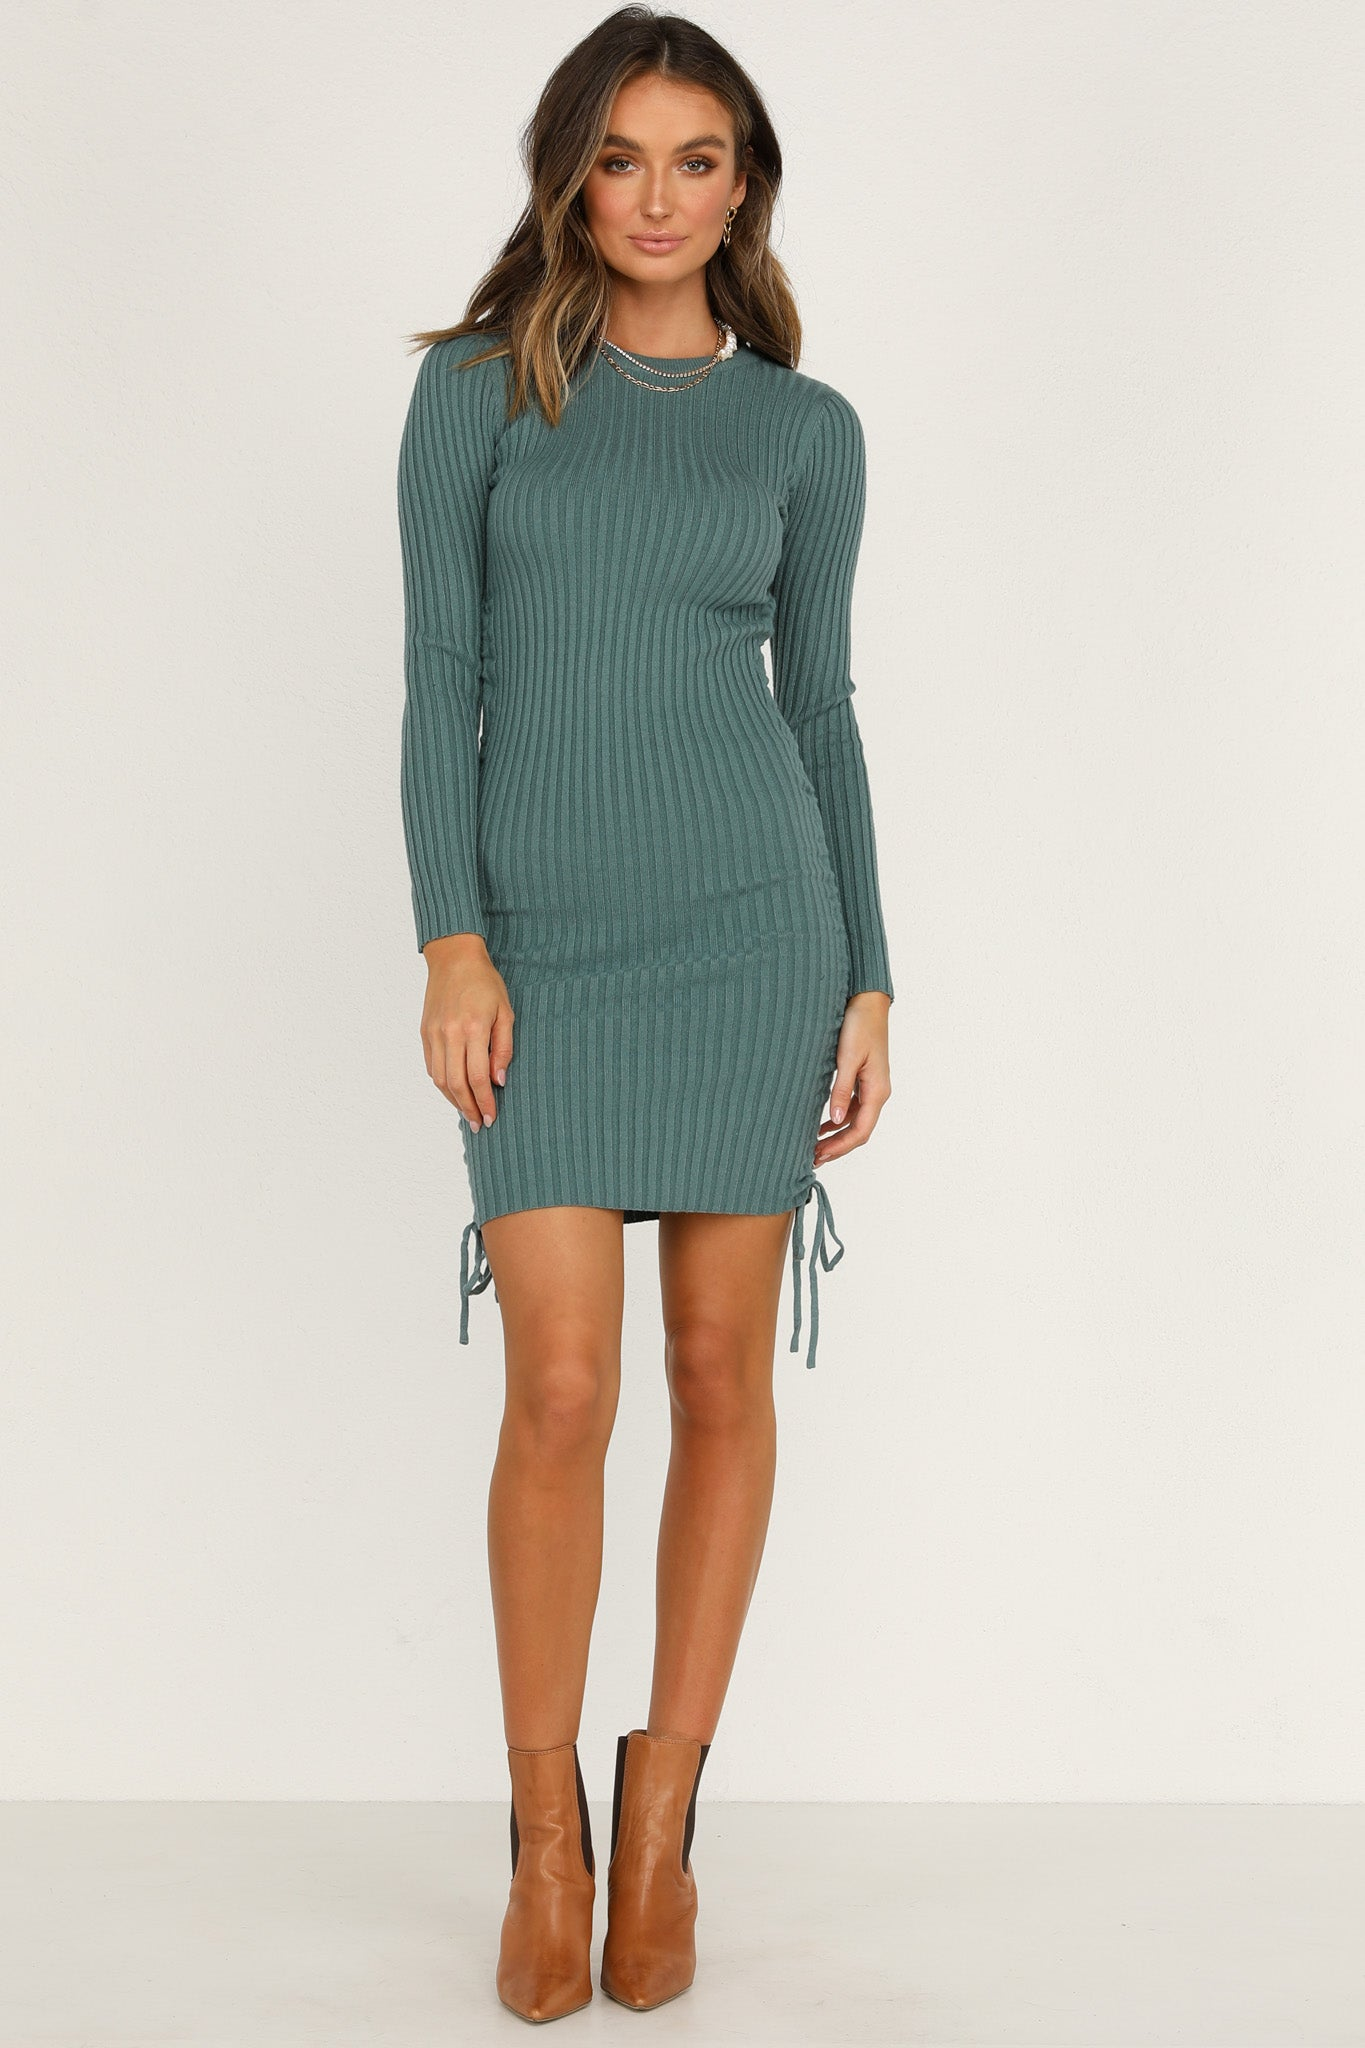 Christie Dress (Teal)